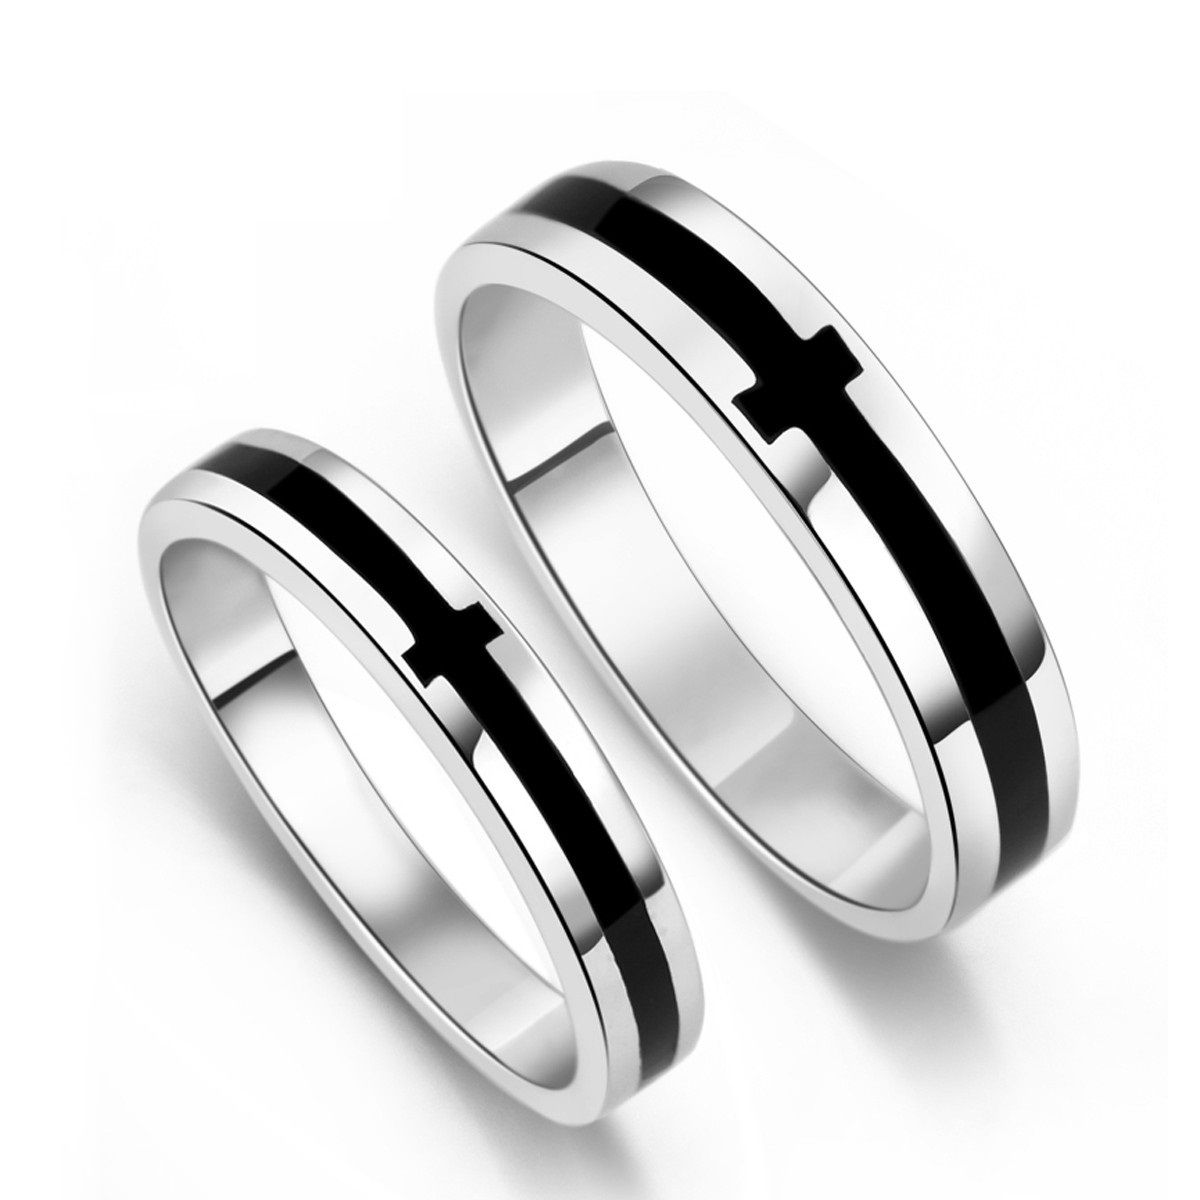 silver mens wedding bands Black Onyx S Sterling Silver Mens Ladies Couple Promise Ring Wedding Bands Matching Set Best